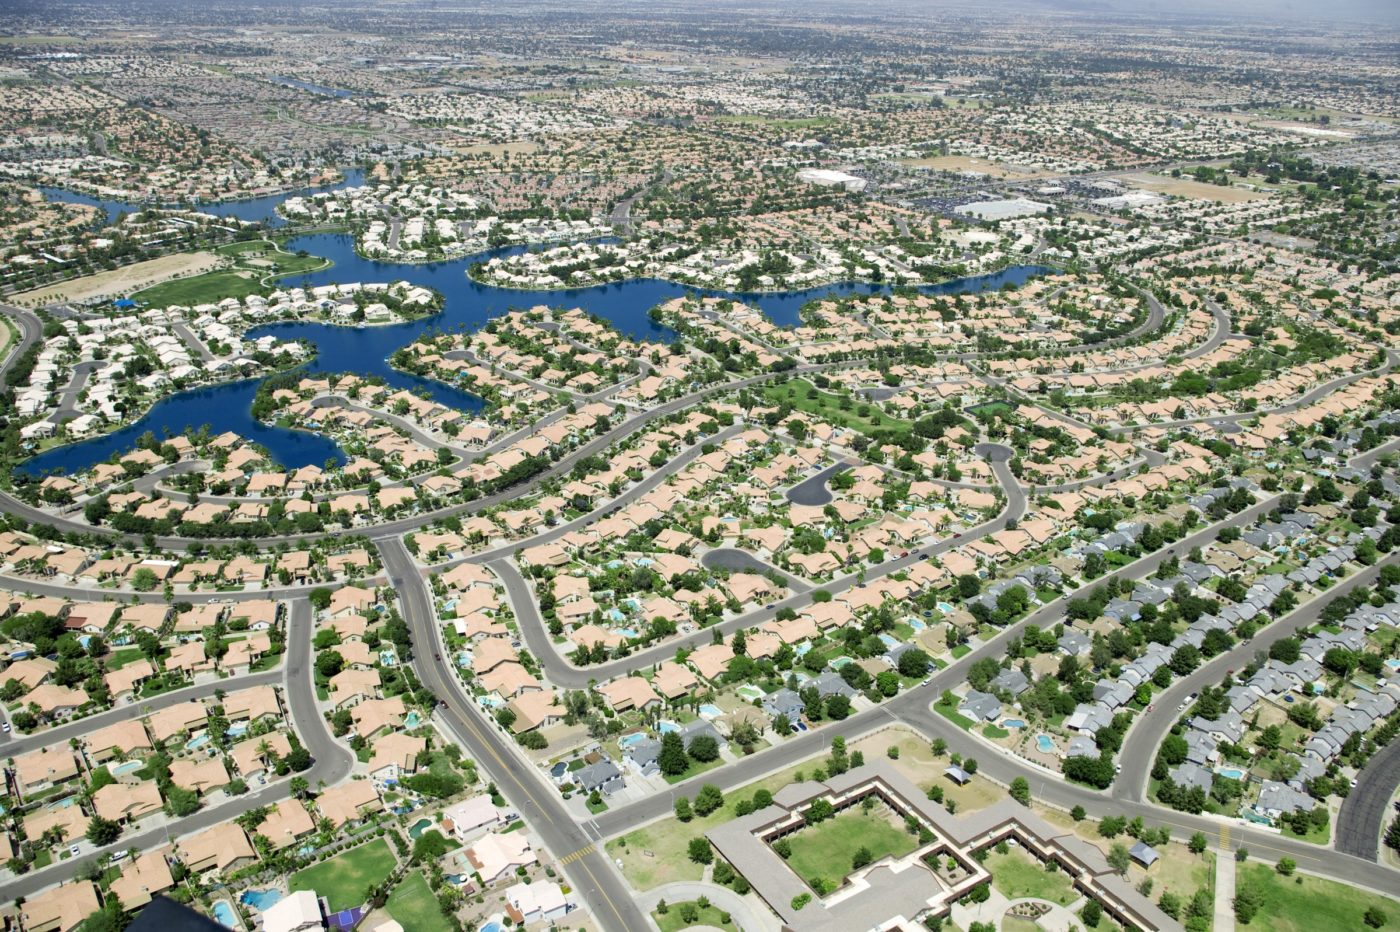 Aerial shot of densely packed homes